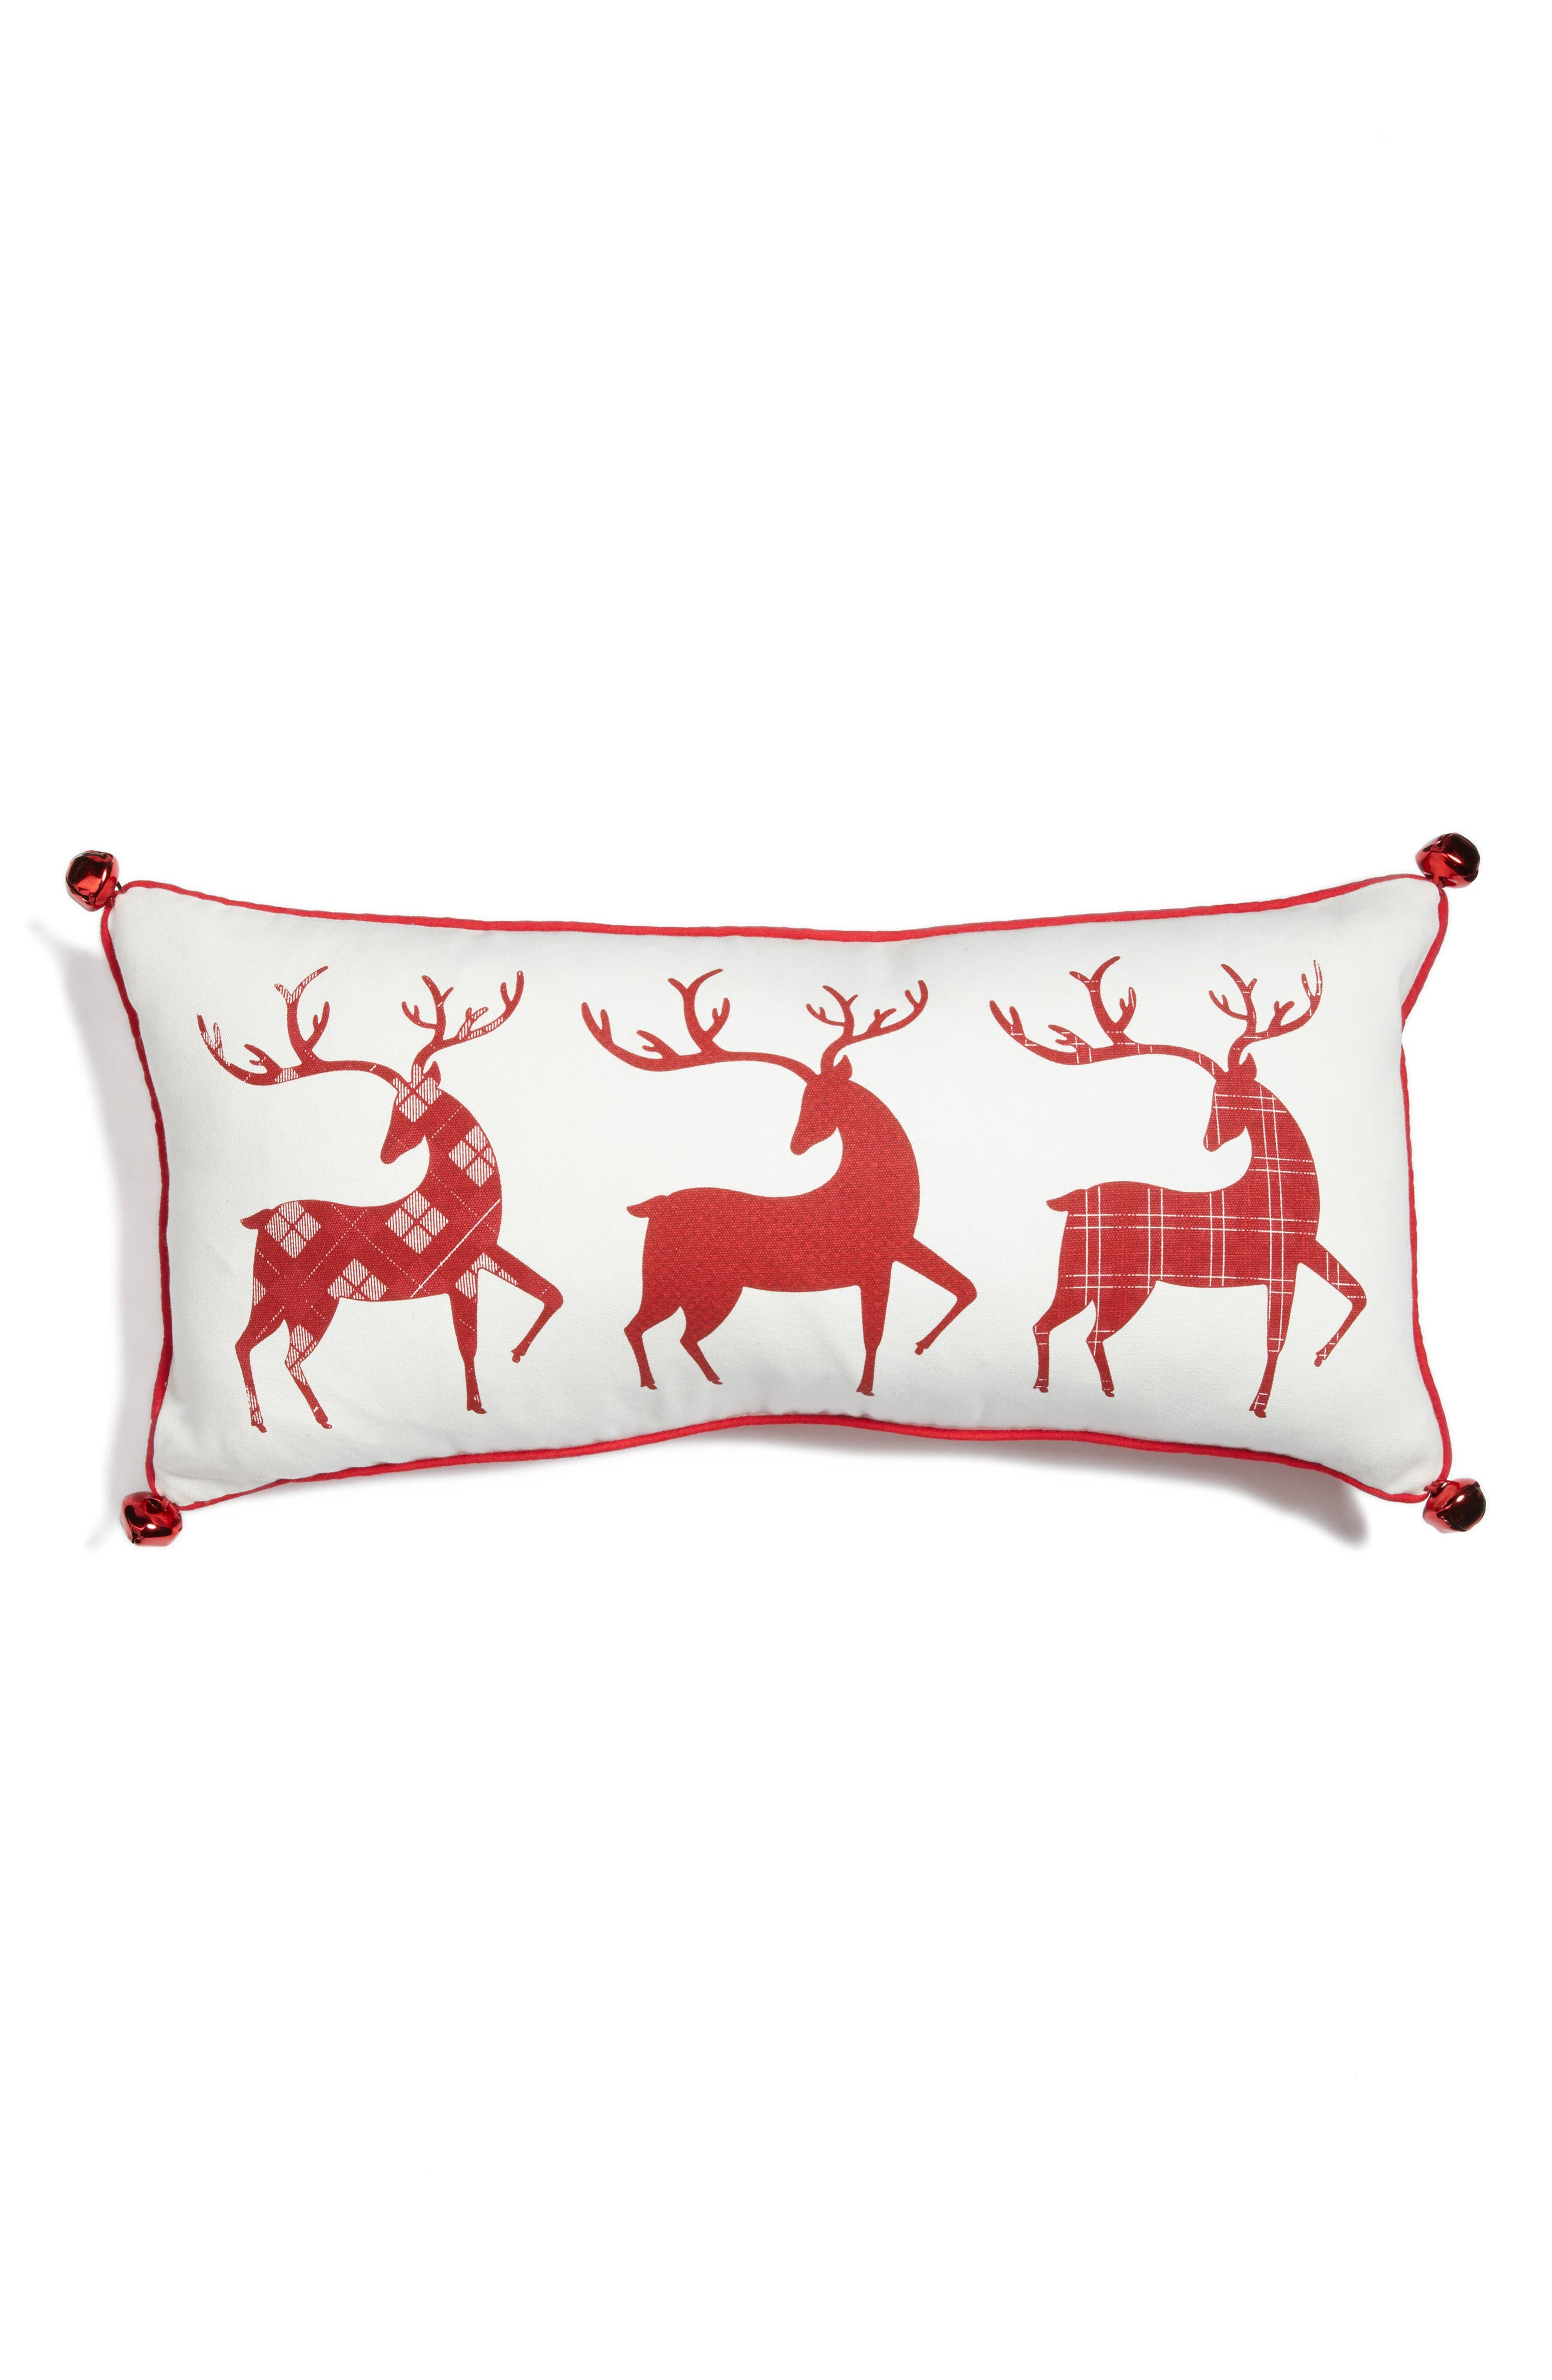 Three Reindeer Accent Pillow,                             Main thumbnail 1, color,                             White